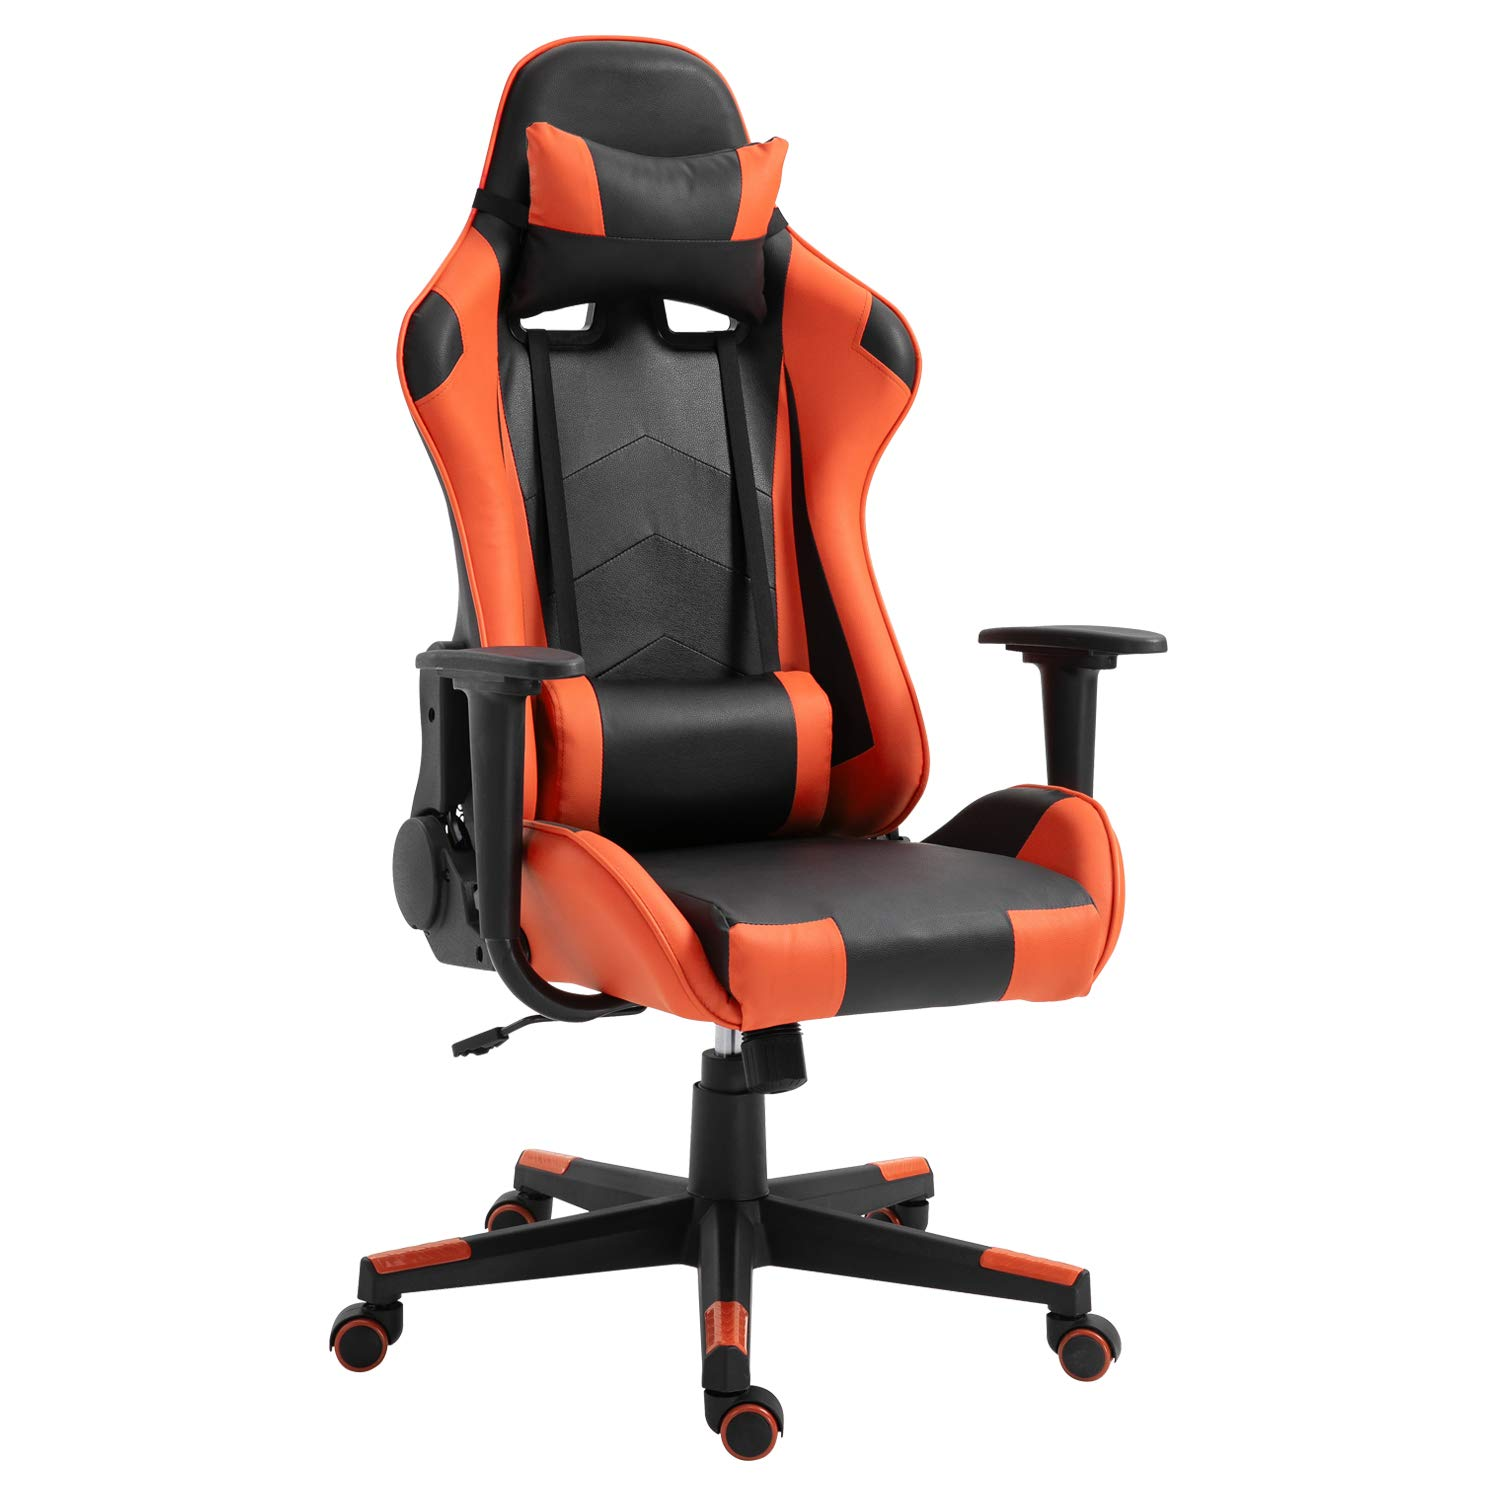 Picture of: Polar Aurora Ergonomic Gaming Chair High Back Swivel Racing Office Chair Pu Leather Sturdy Metal Frame With Adjustable Armrests And Footrest Black